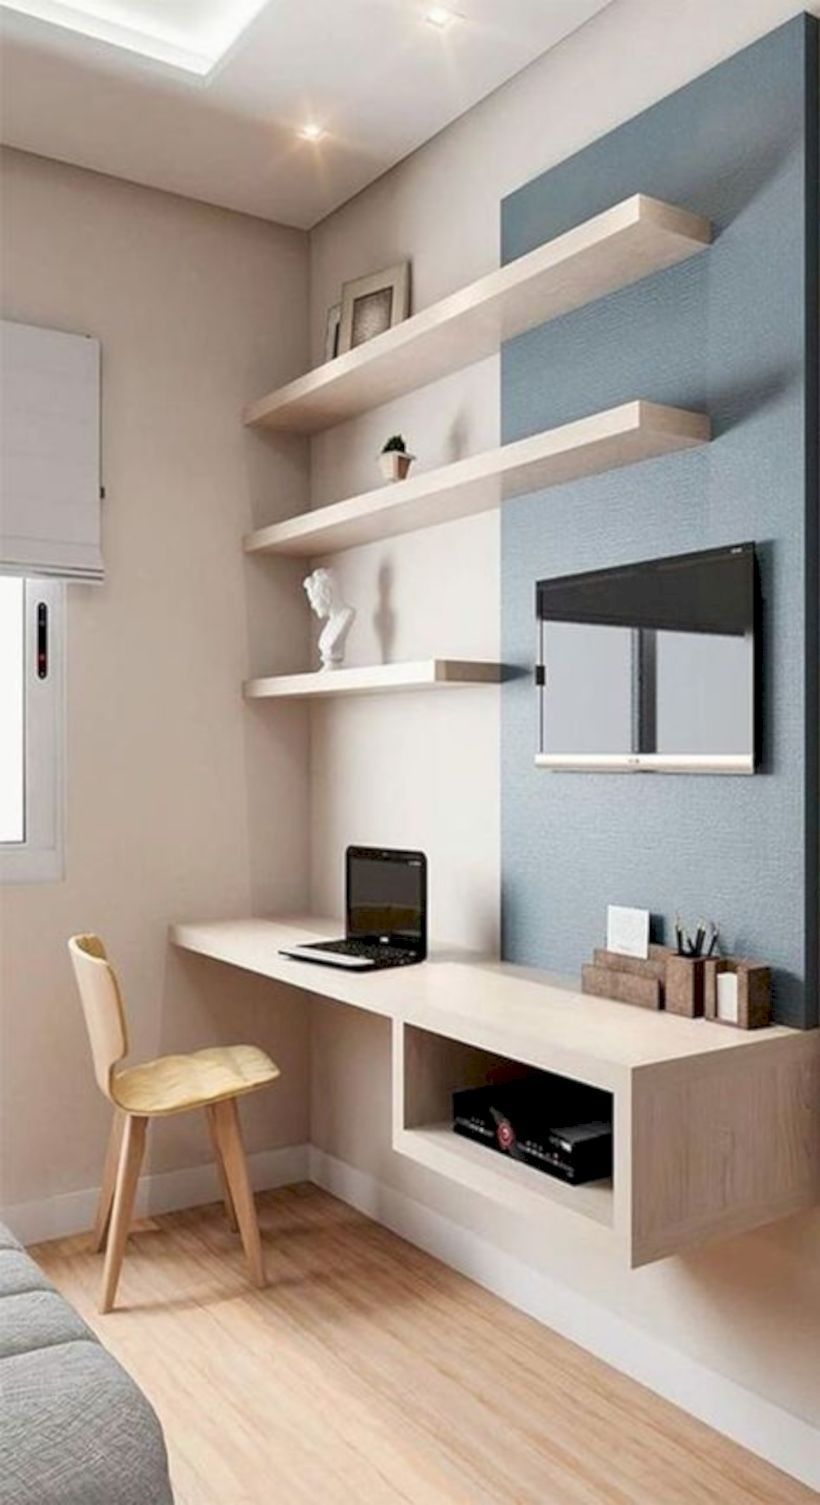 Mr Lalit Sharma S Residence In Kharghar Minimalist Living: 48 Wonderful Small Office Design Ideas In 2020